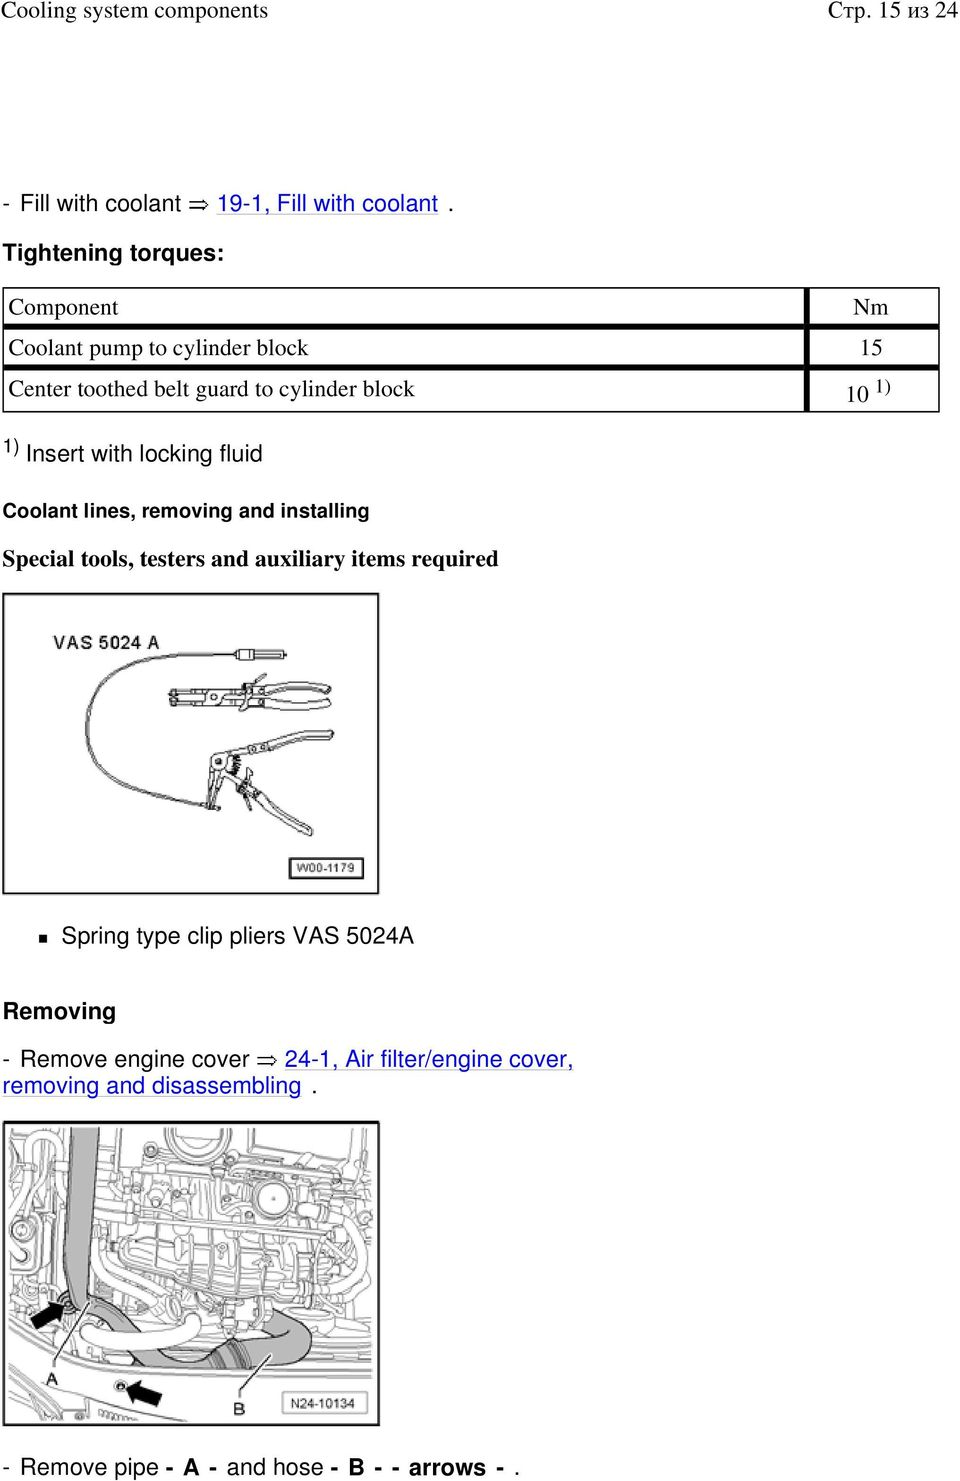 1) 1) Insert with locking fluid Coolant lines, removing and installing Special tools, testers and auxiliary items